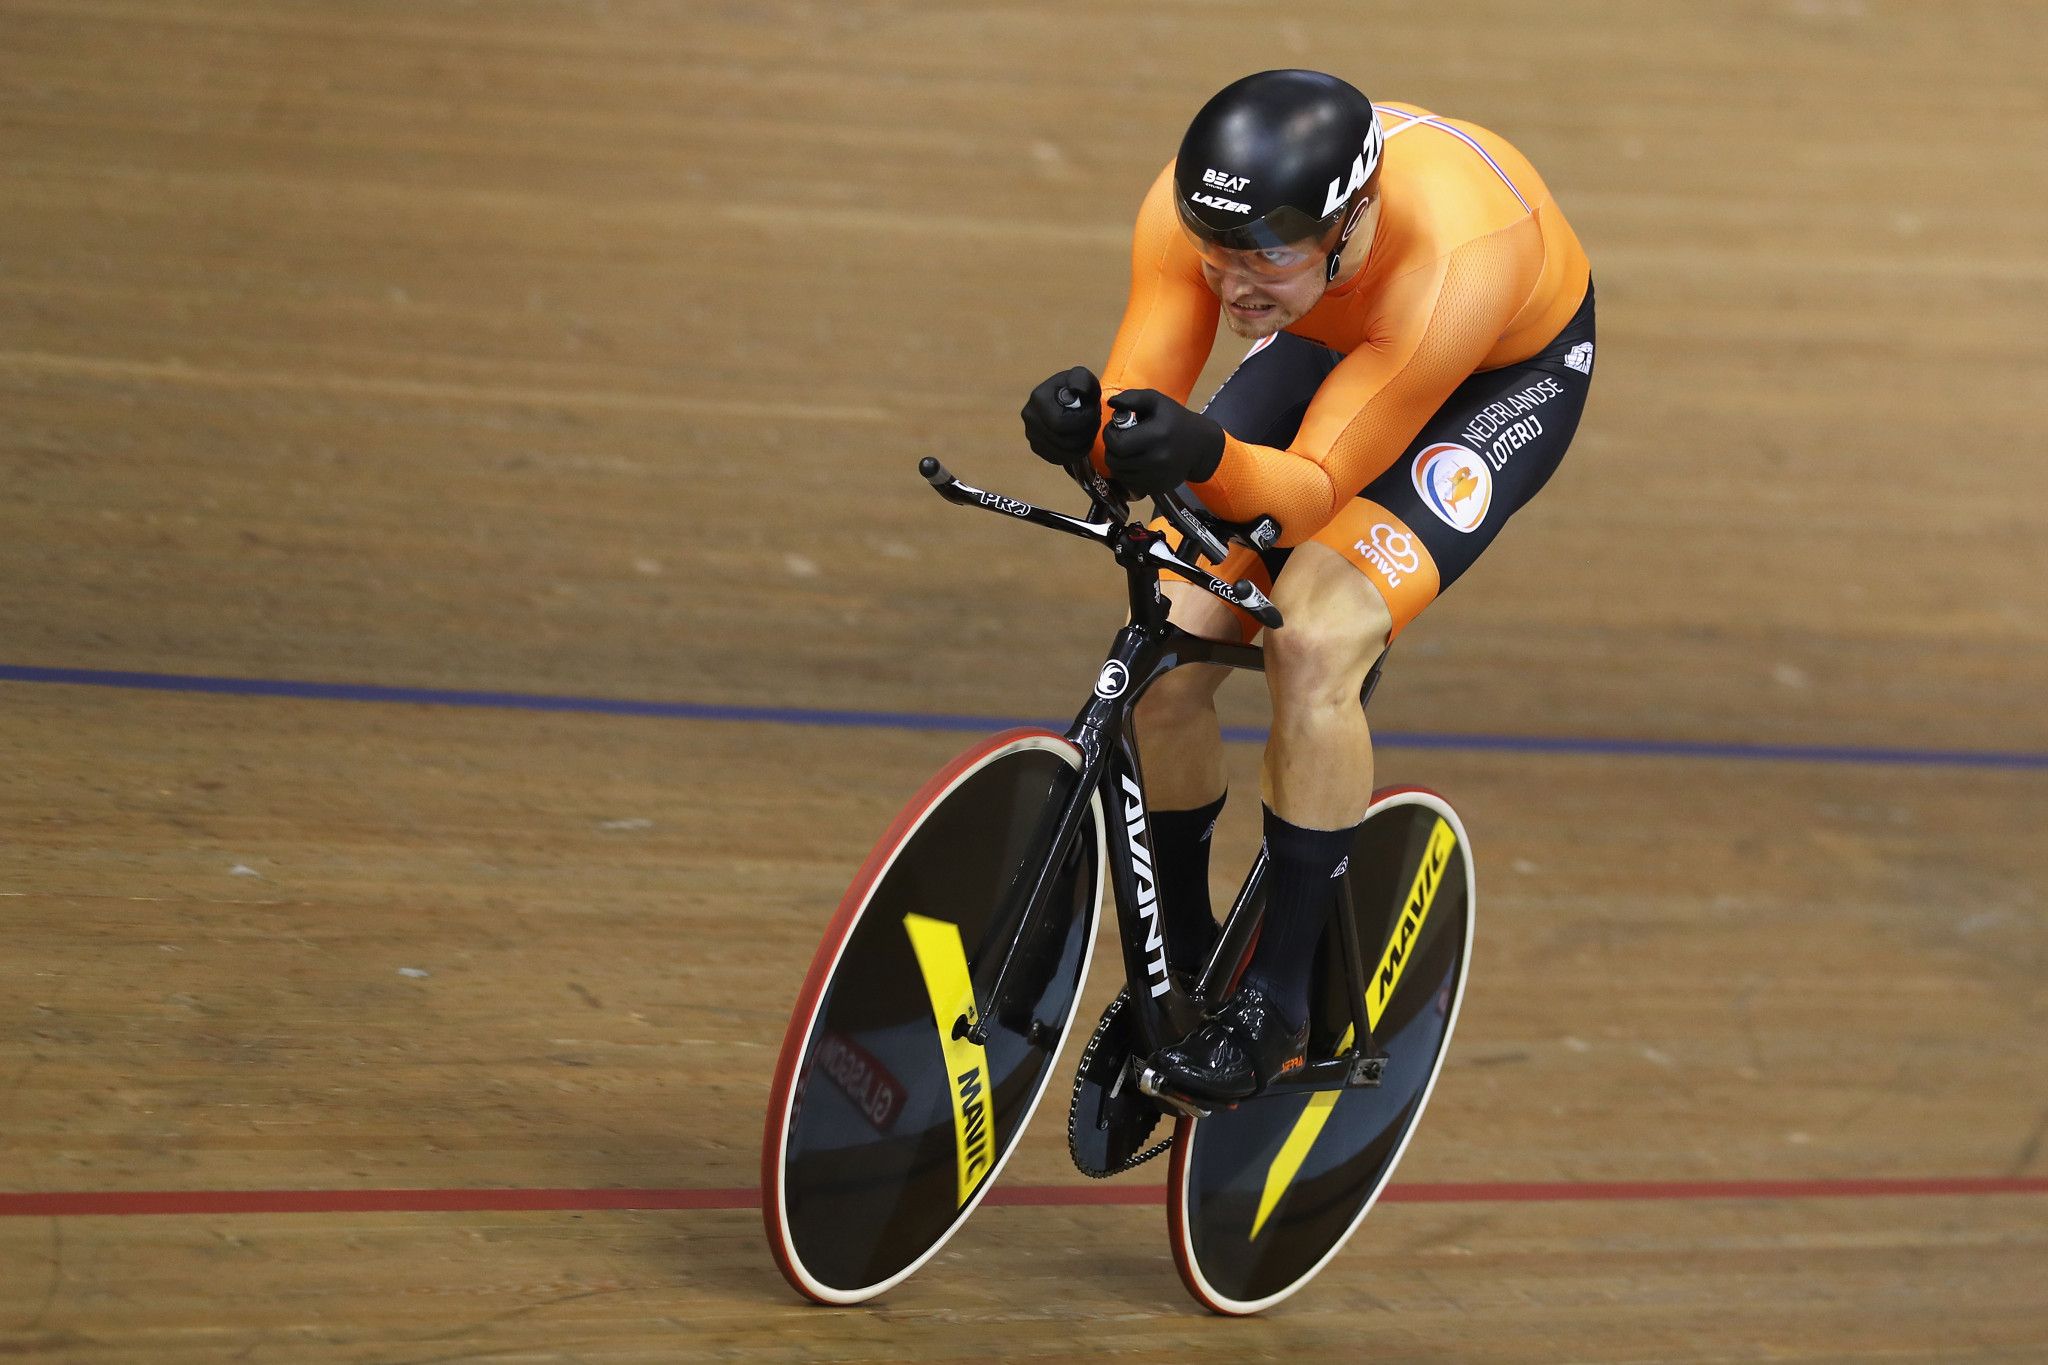 Matthijs Buchli won the men's keirin at the last Track Cycling World Cup in London ©Getty Images